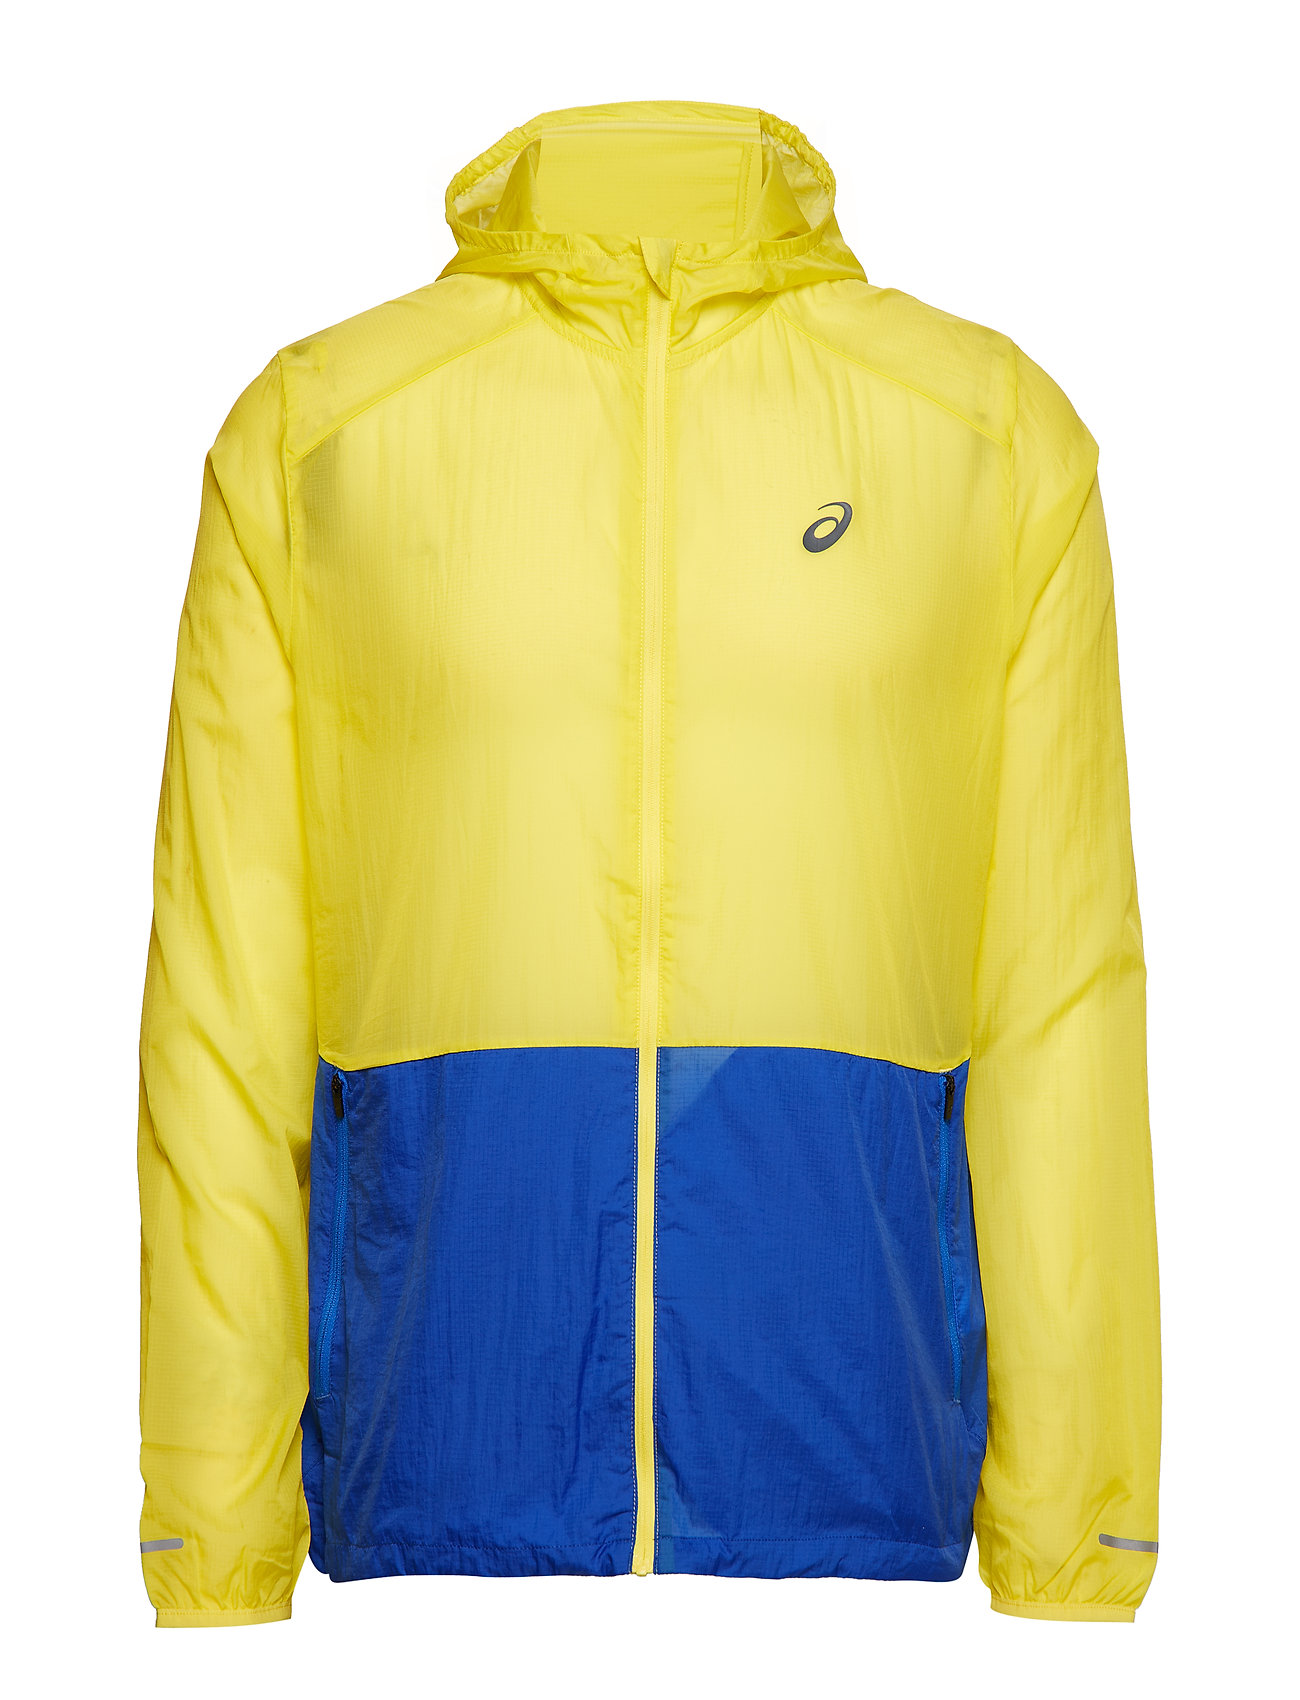 Asics PACKABLE JACKET - LEMON SPARK/ILLUSION BLUE